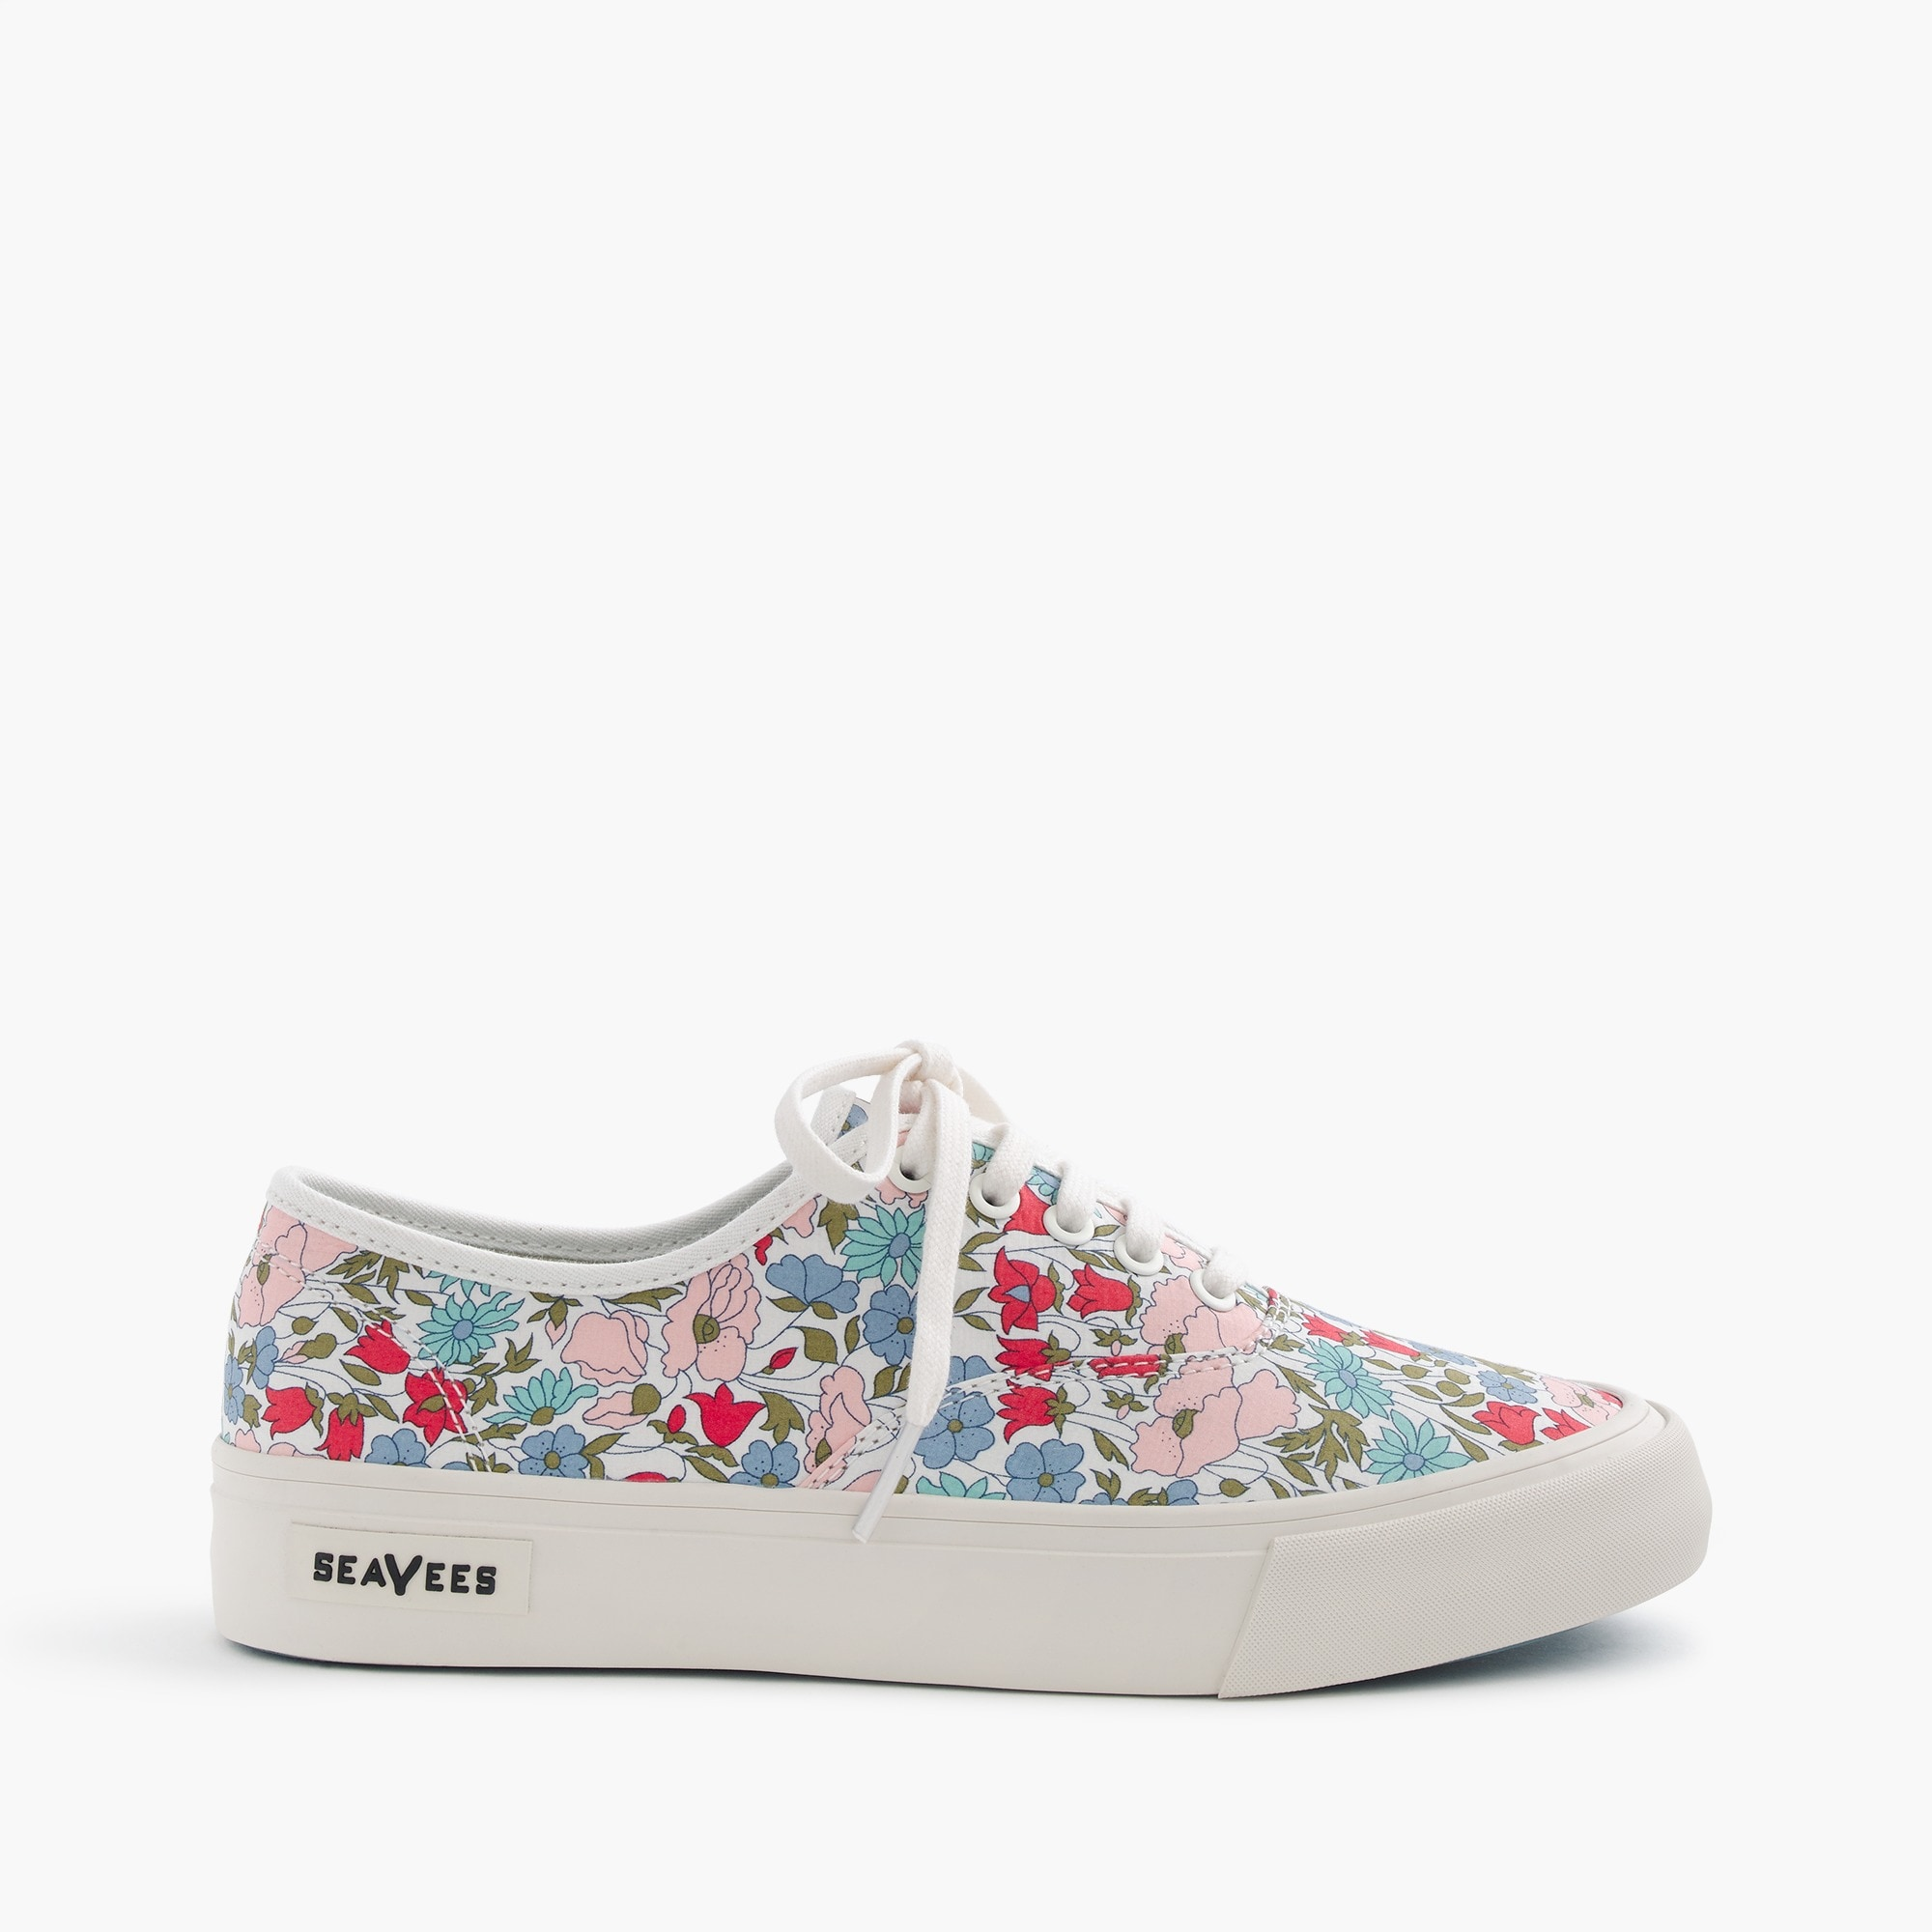 Image 1 for Seavees® for J.Crew Legend sneakers in Liberty poppy & daisy floral